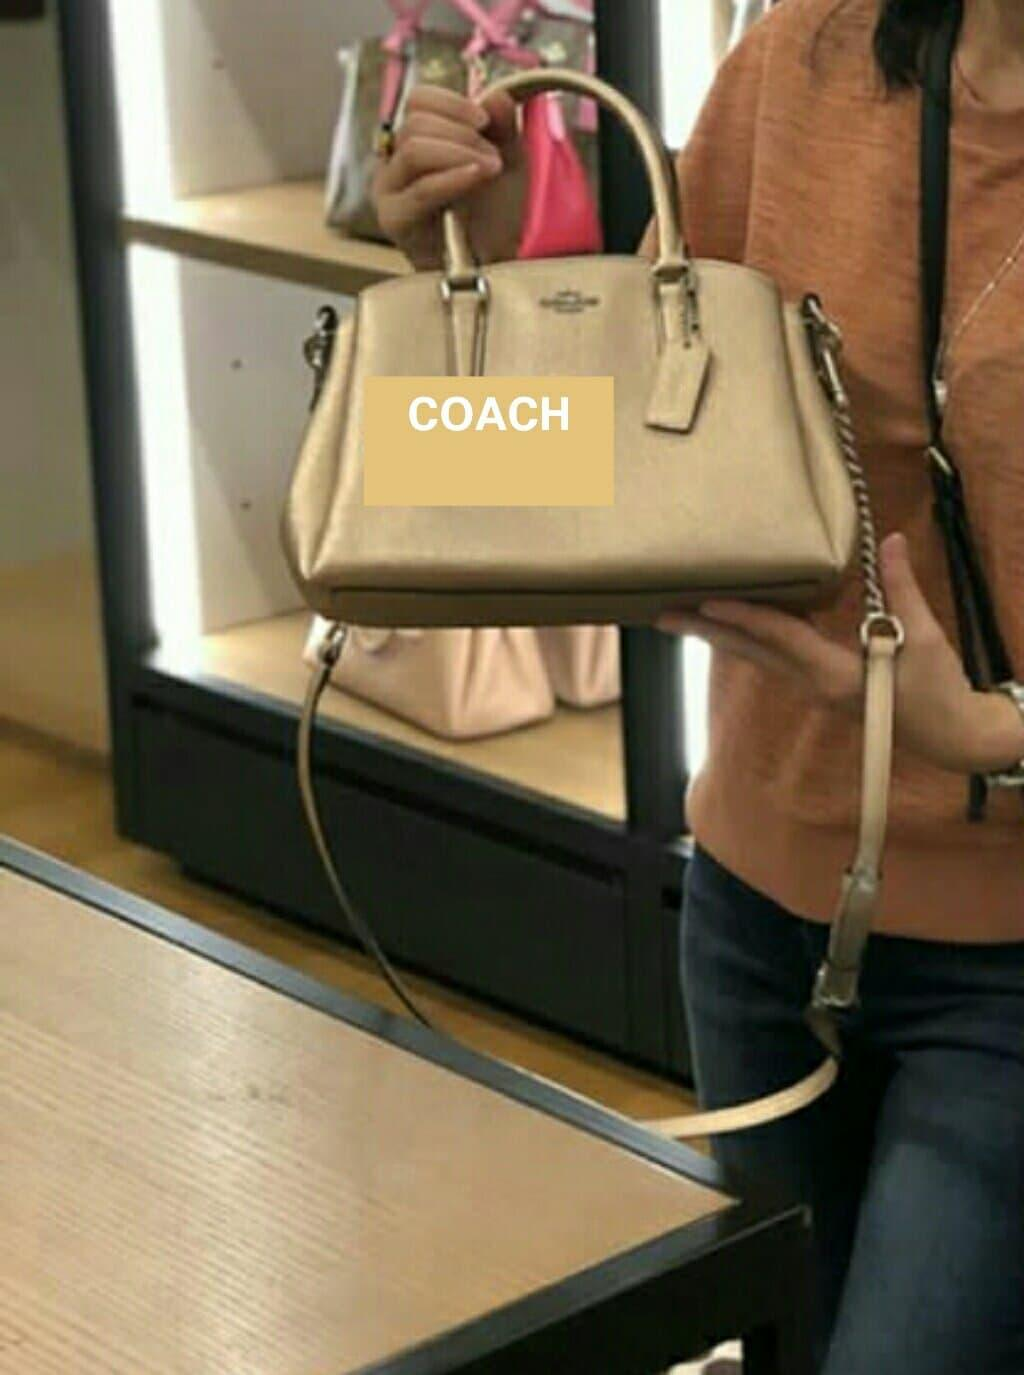 Daftar Harga Coach Small Crossby Yellow Update 2018 Chronoforce 5258mr Hitam Rosegold Ring Plat Buy Sell Cheapest Crossgrain Leather Best Quality Product Tas Mini Sage